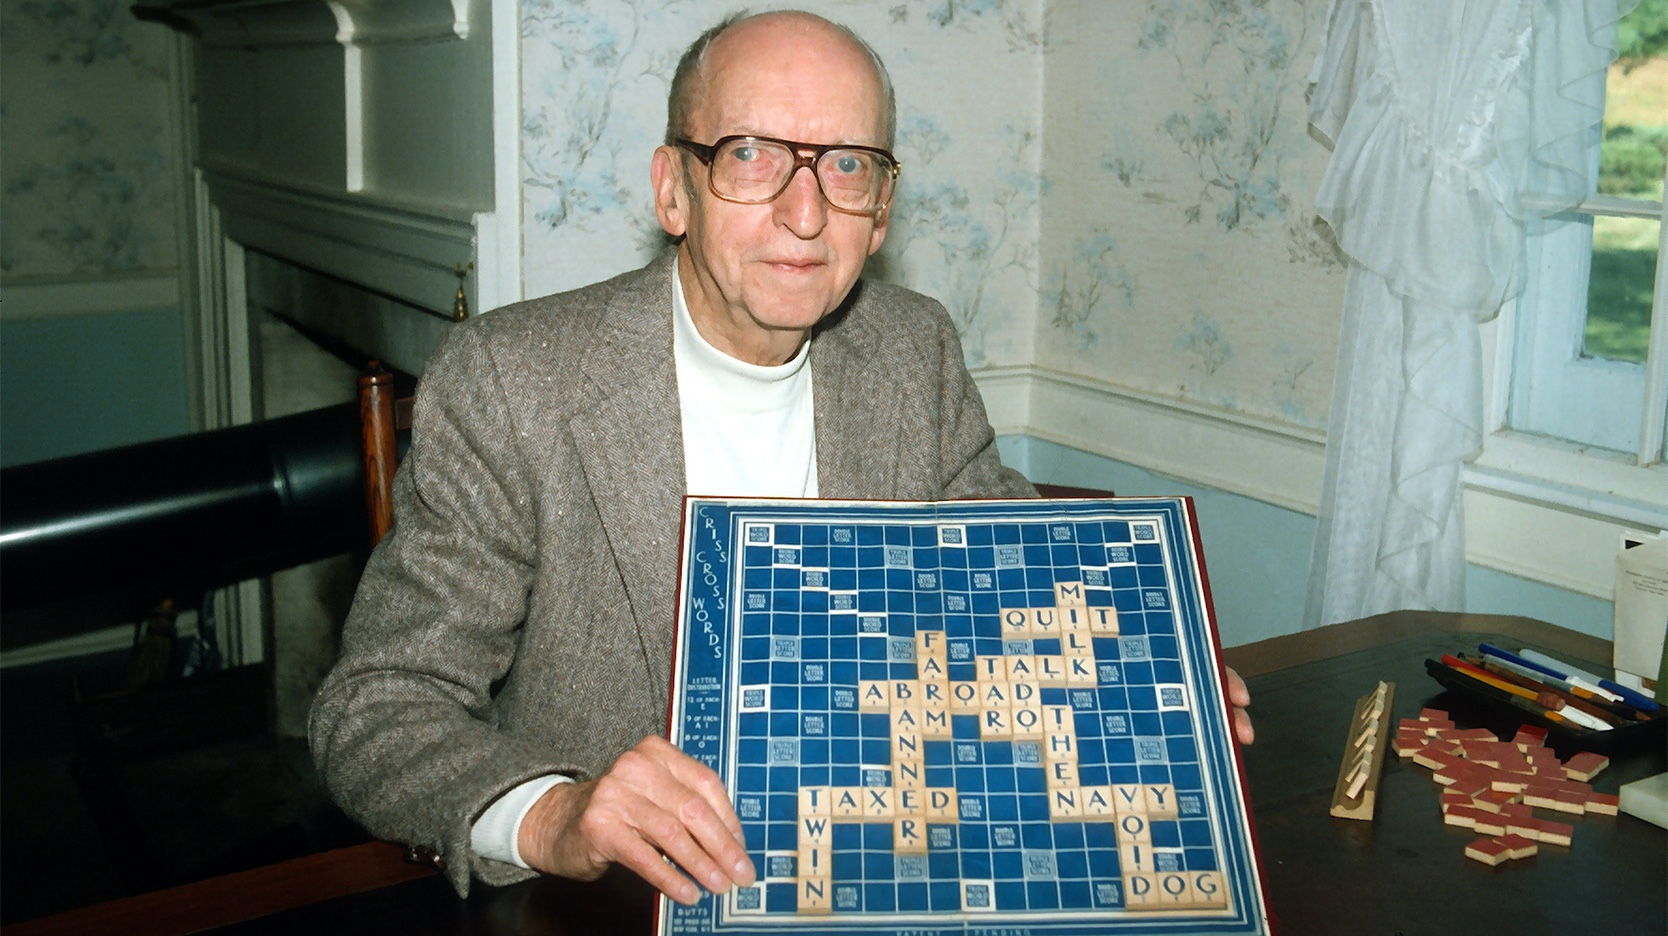 Alfred M. Butts inventor Scrabble board game